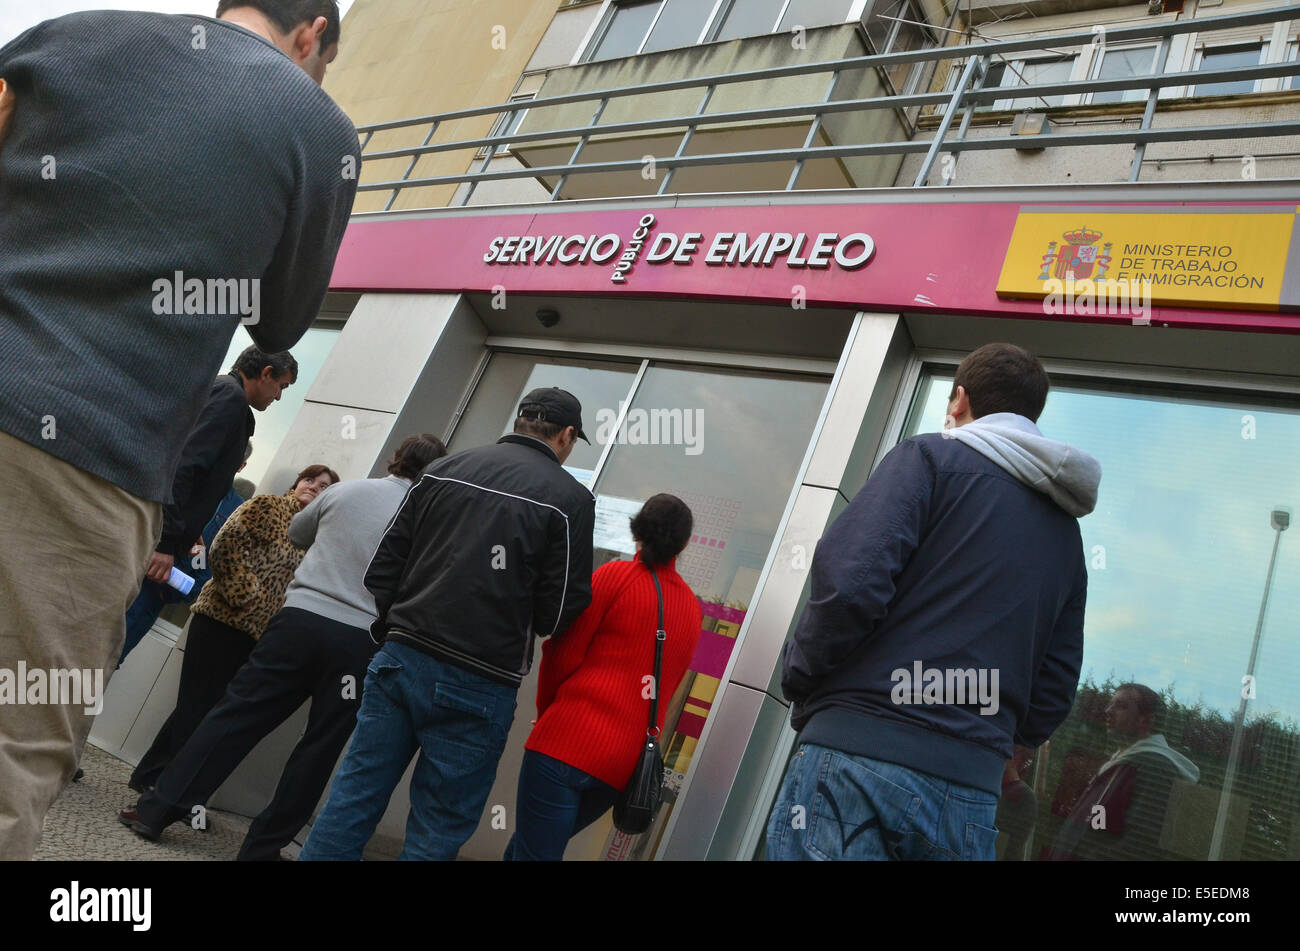 Santander, Spain, 21th November 2011. A queue of unemployed people waits for their local job centre (unemployment - Stock Image